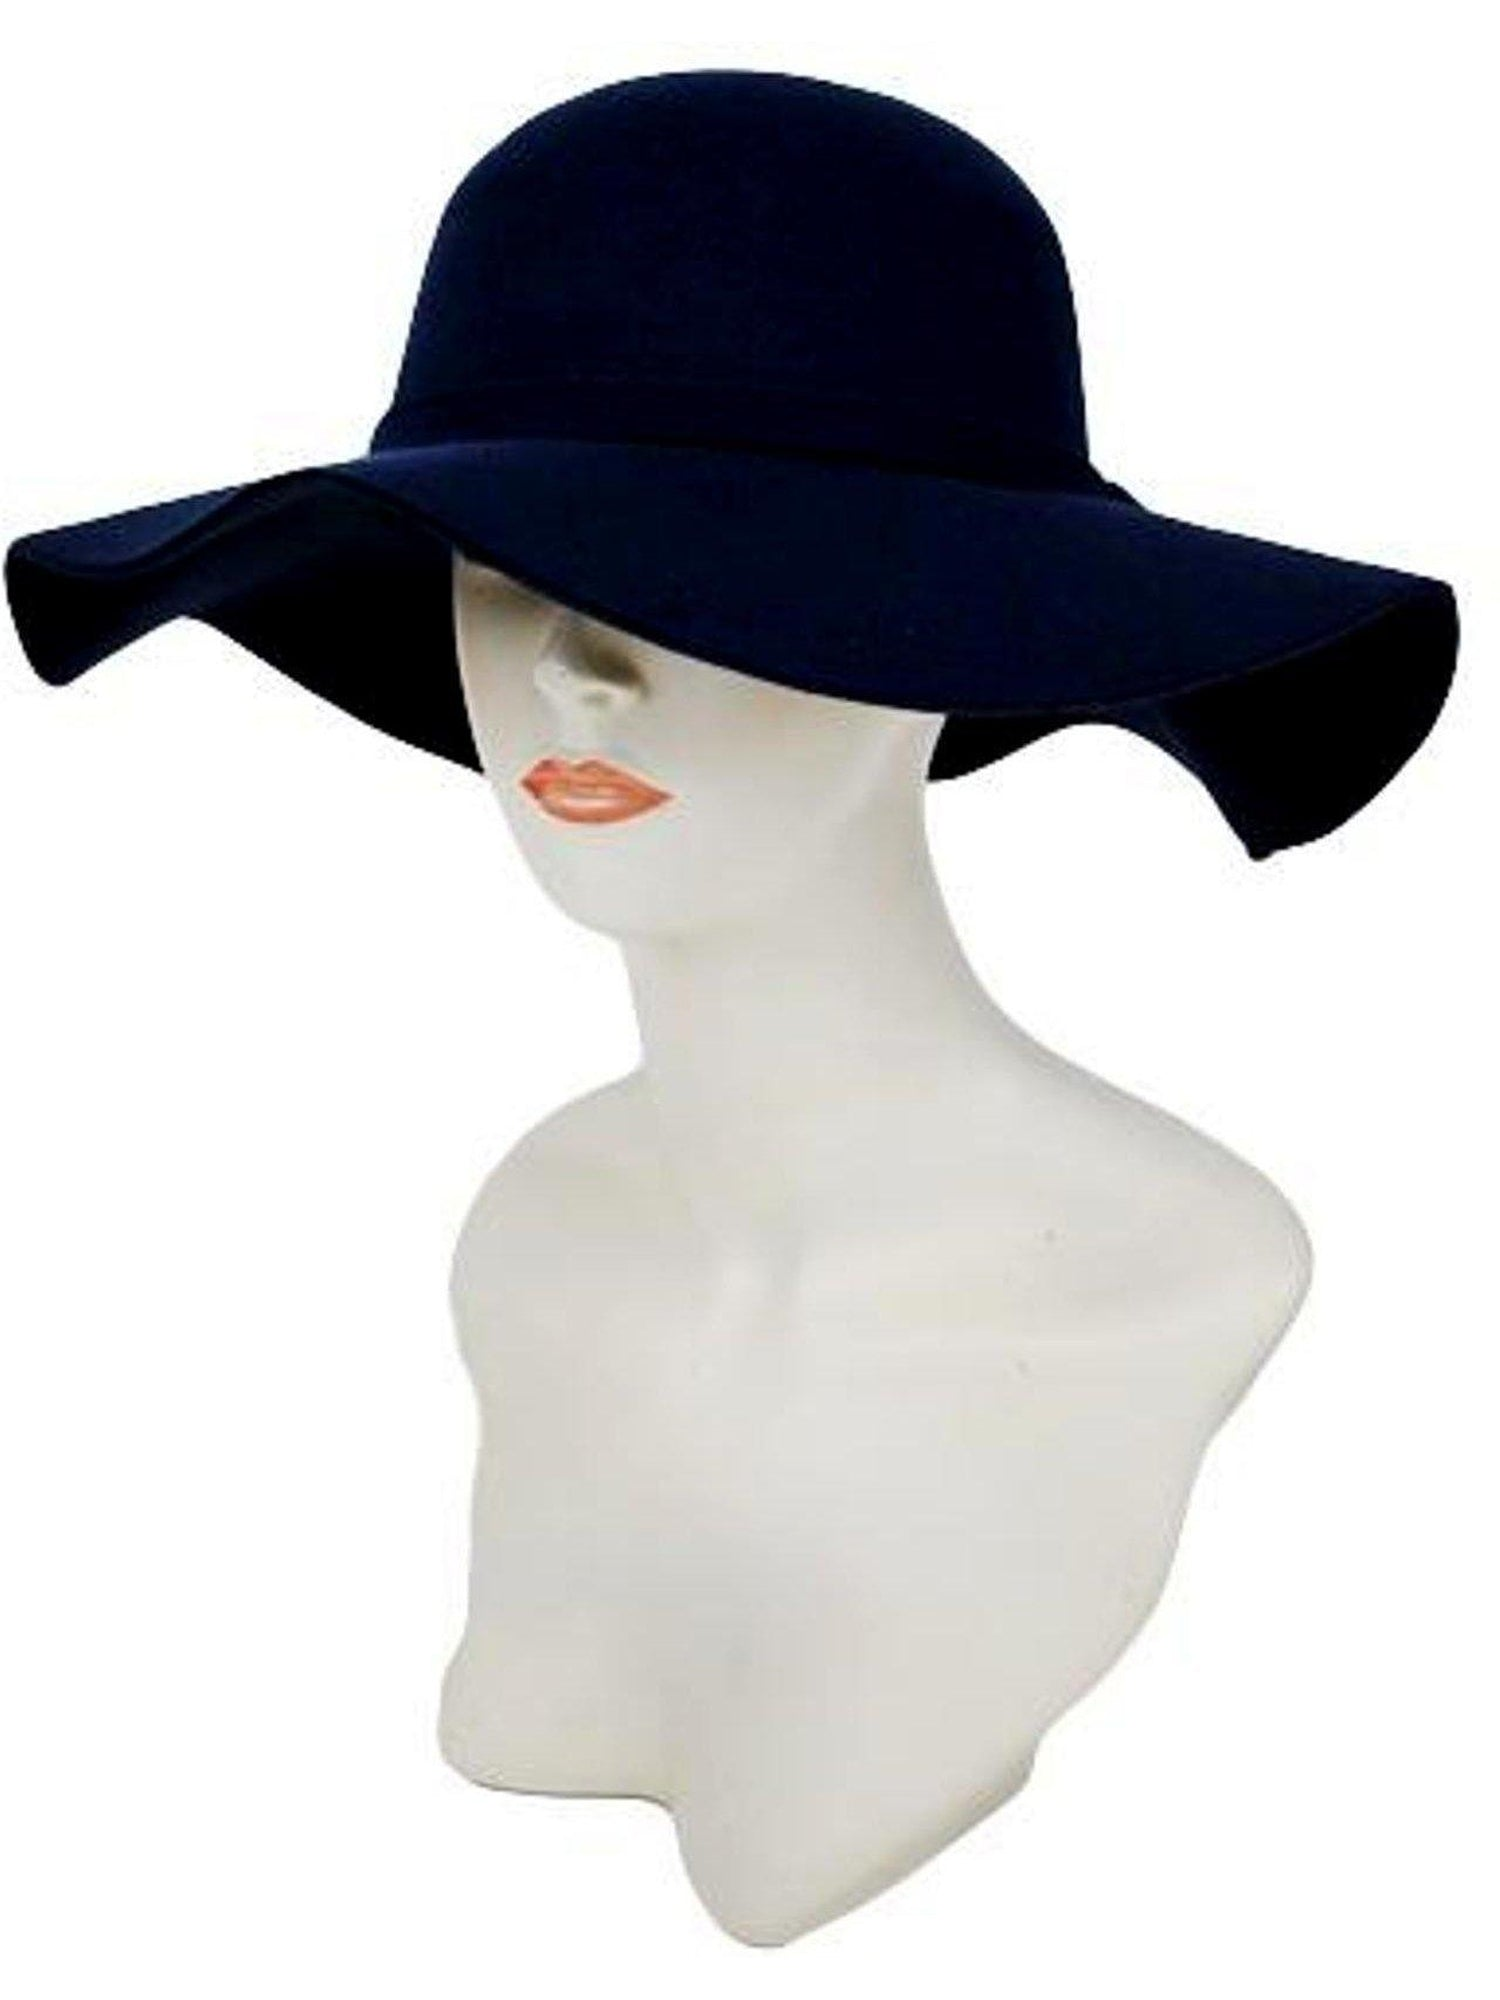 ea0f6fda0c5 Soft felt floppy hat monochromatic band with small ribbon black hats hair cap  zone os black